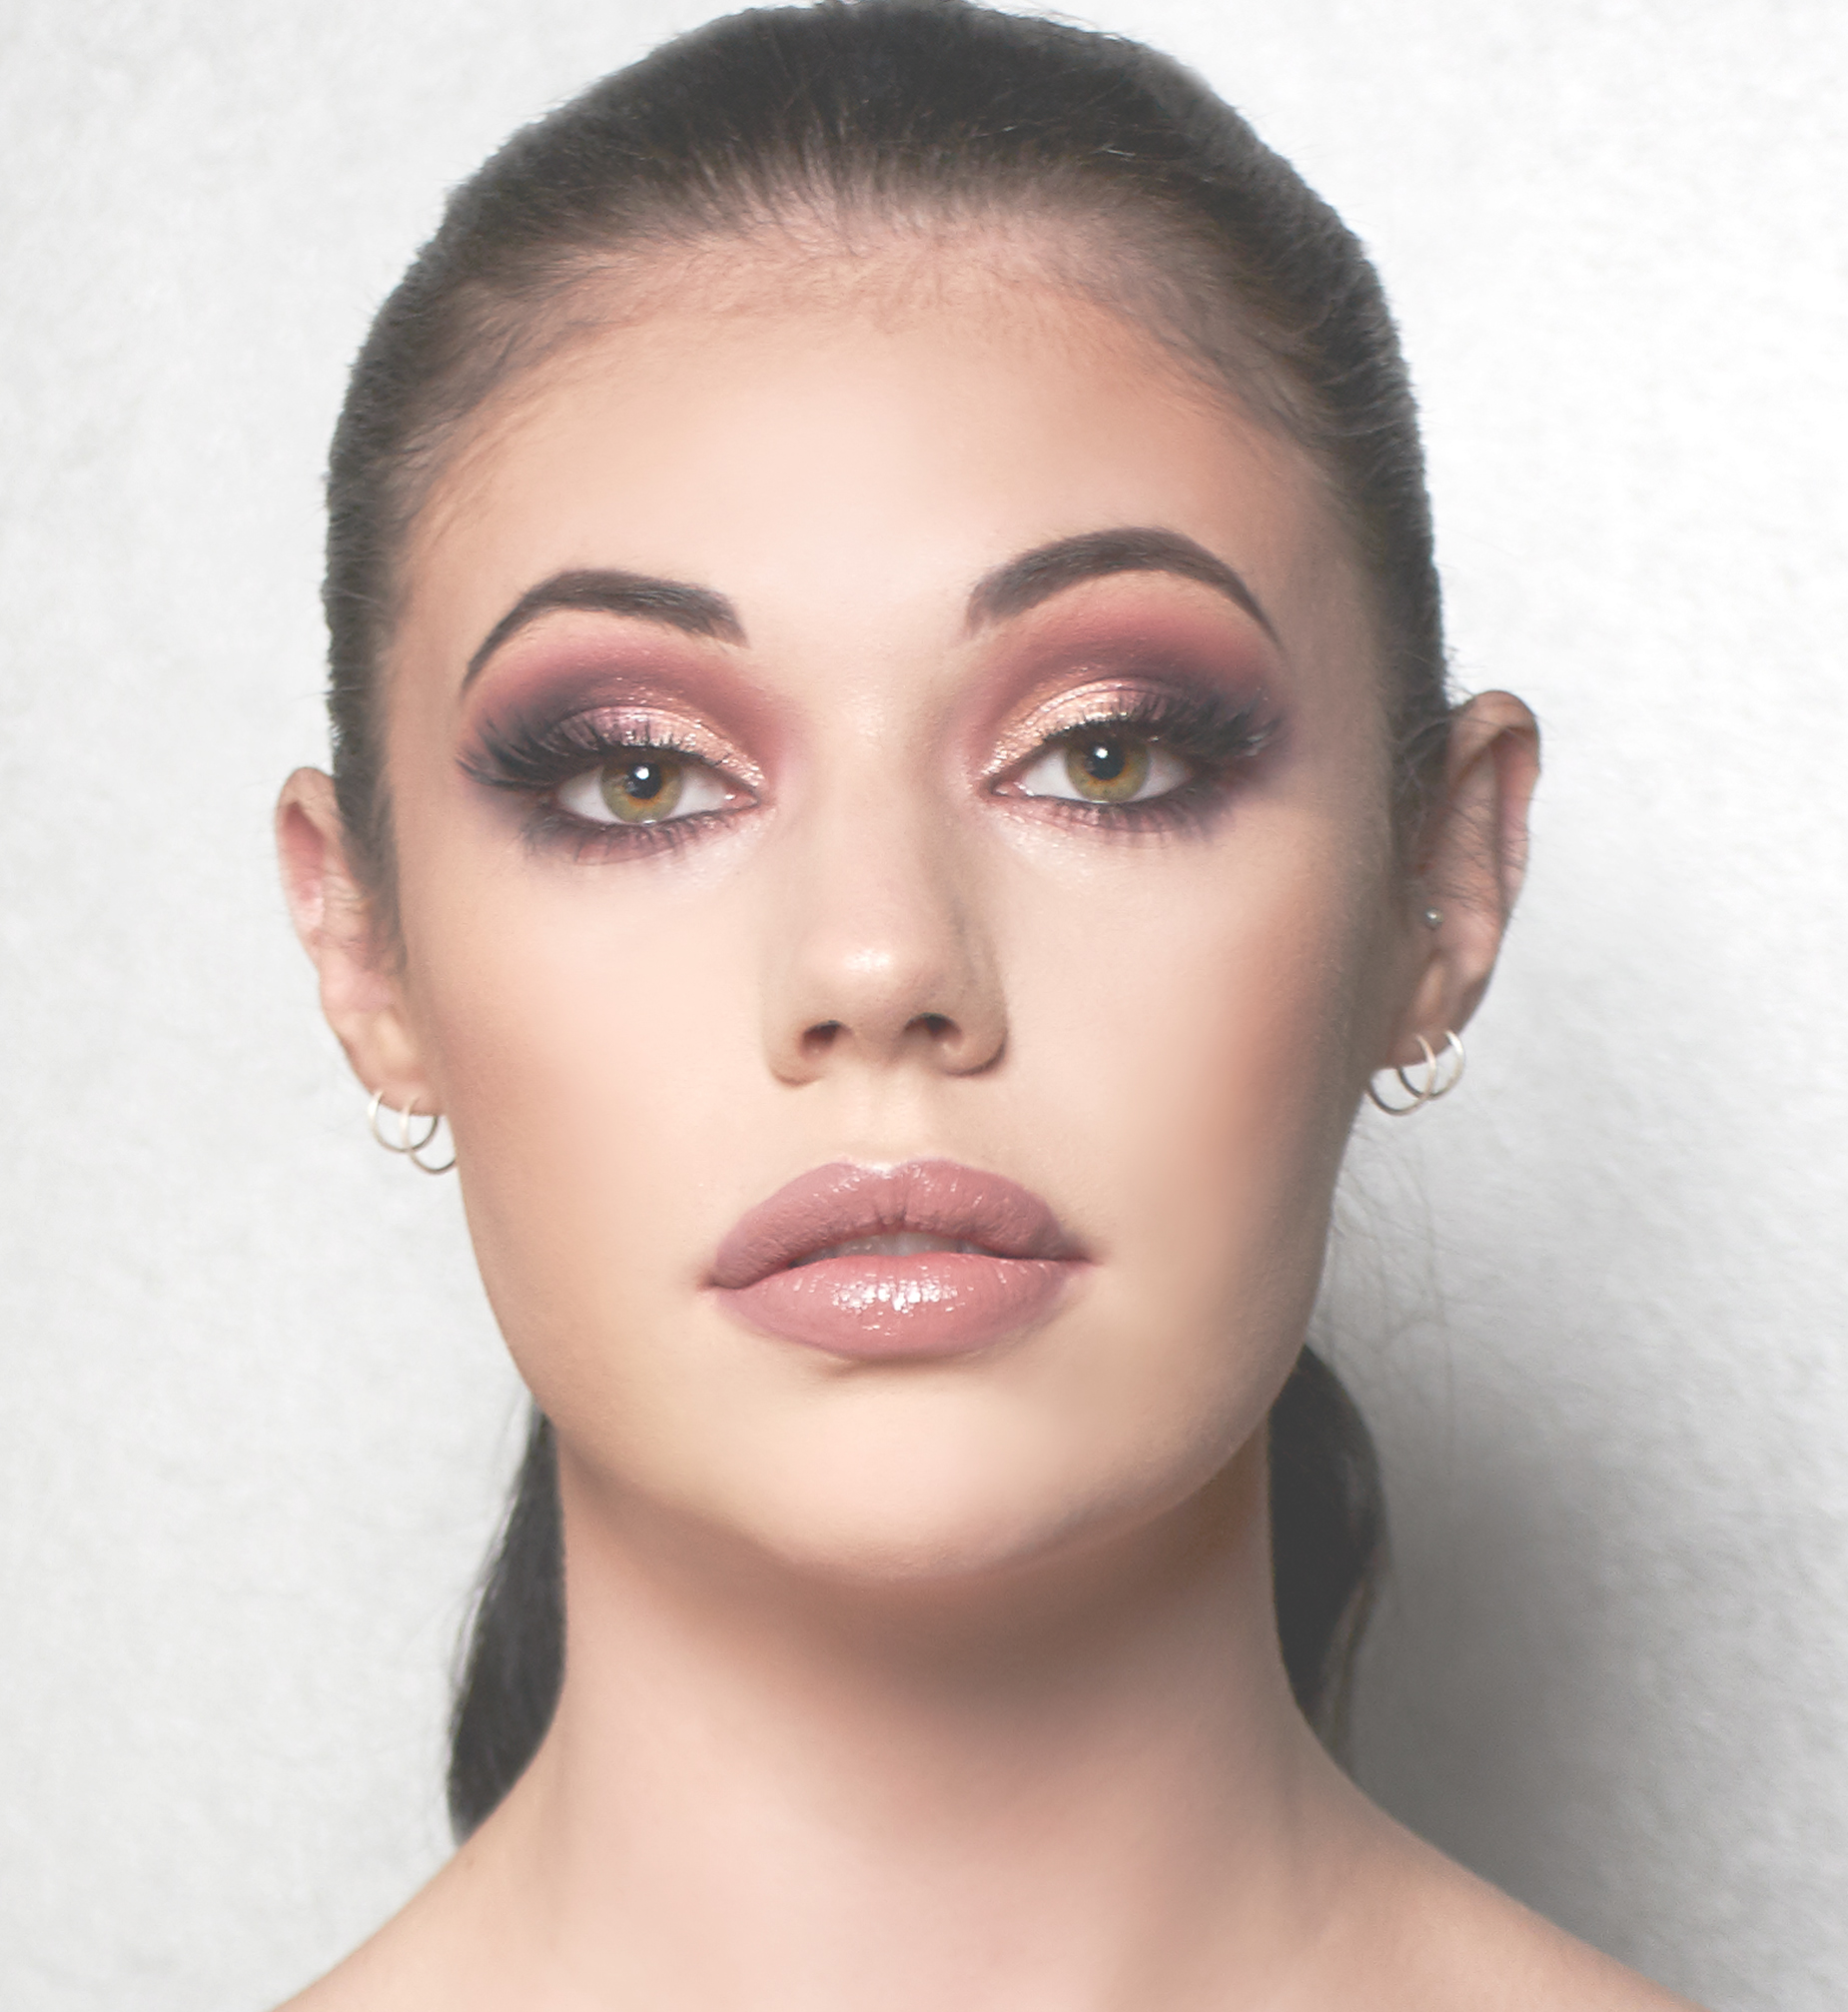 Advanced Makeup Techniques for Editorial, Bridal & Media